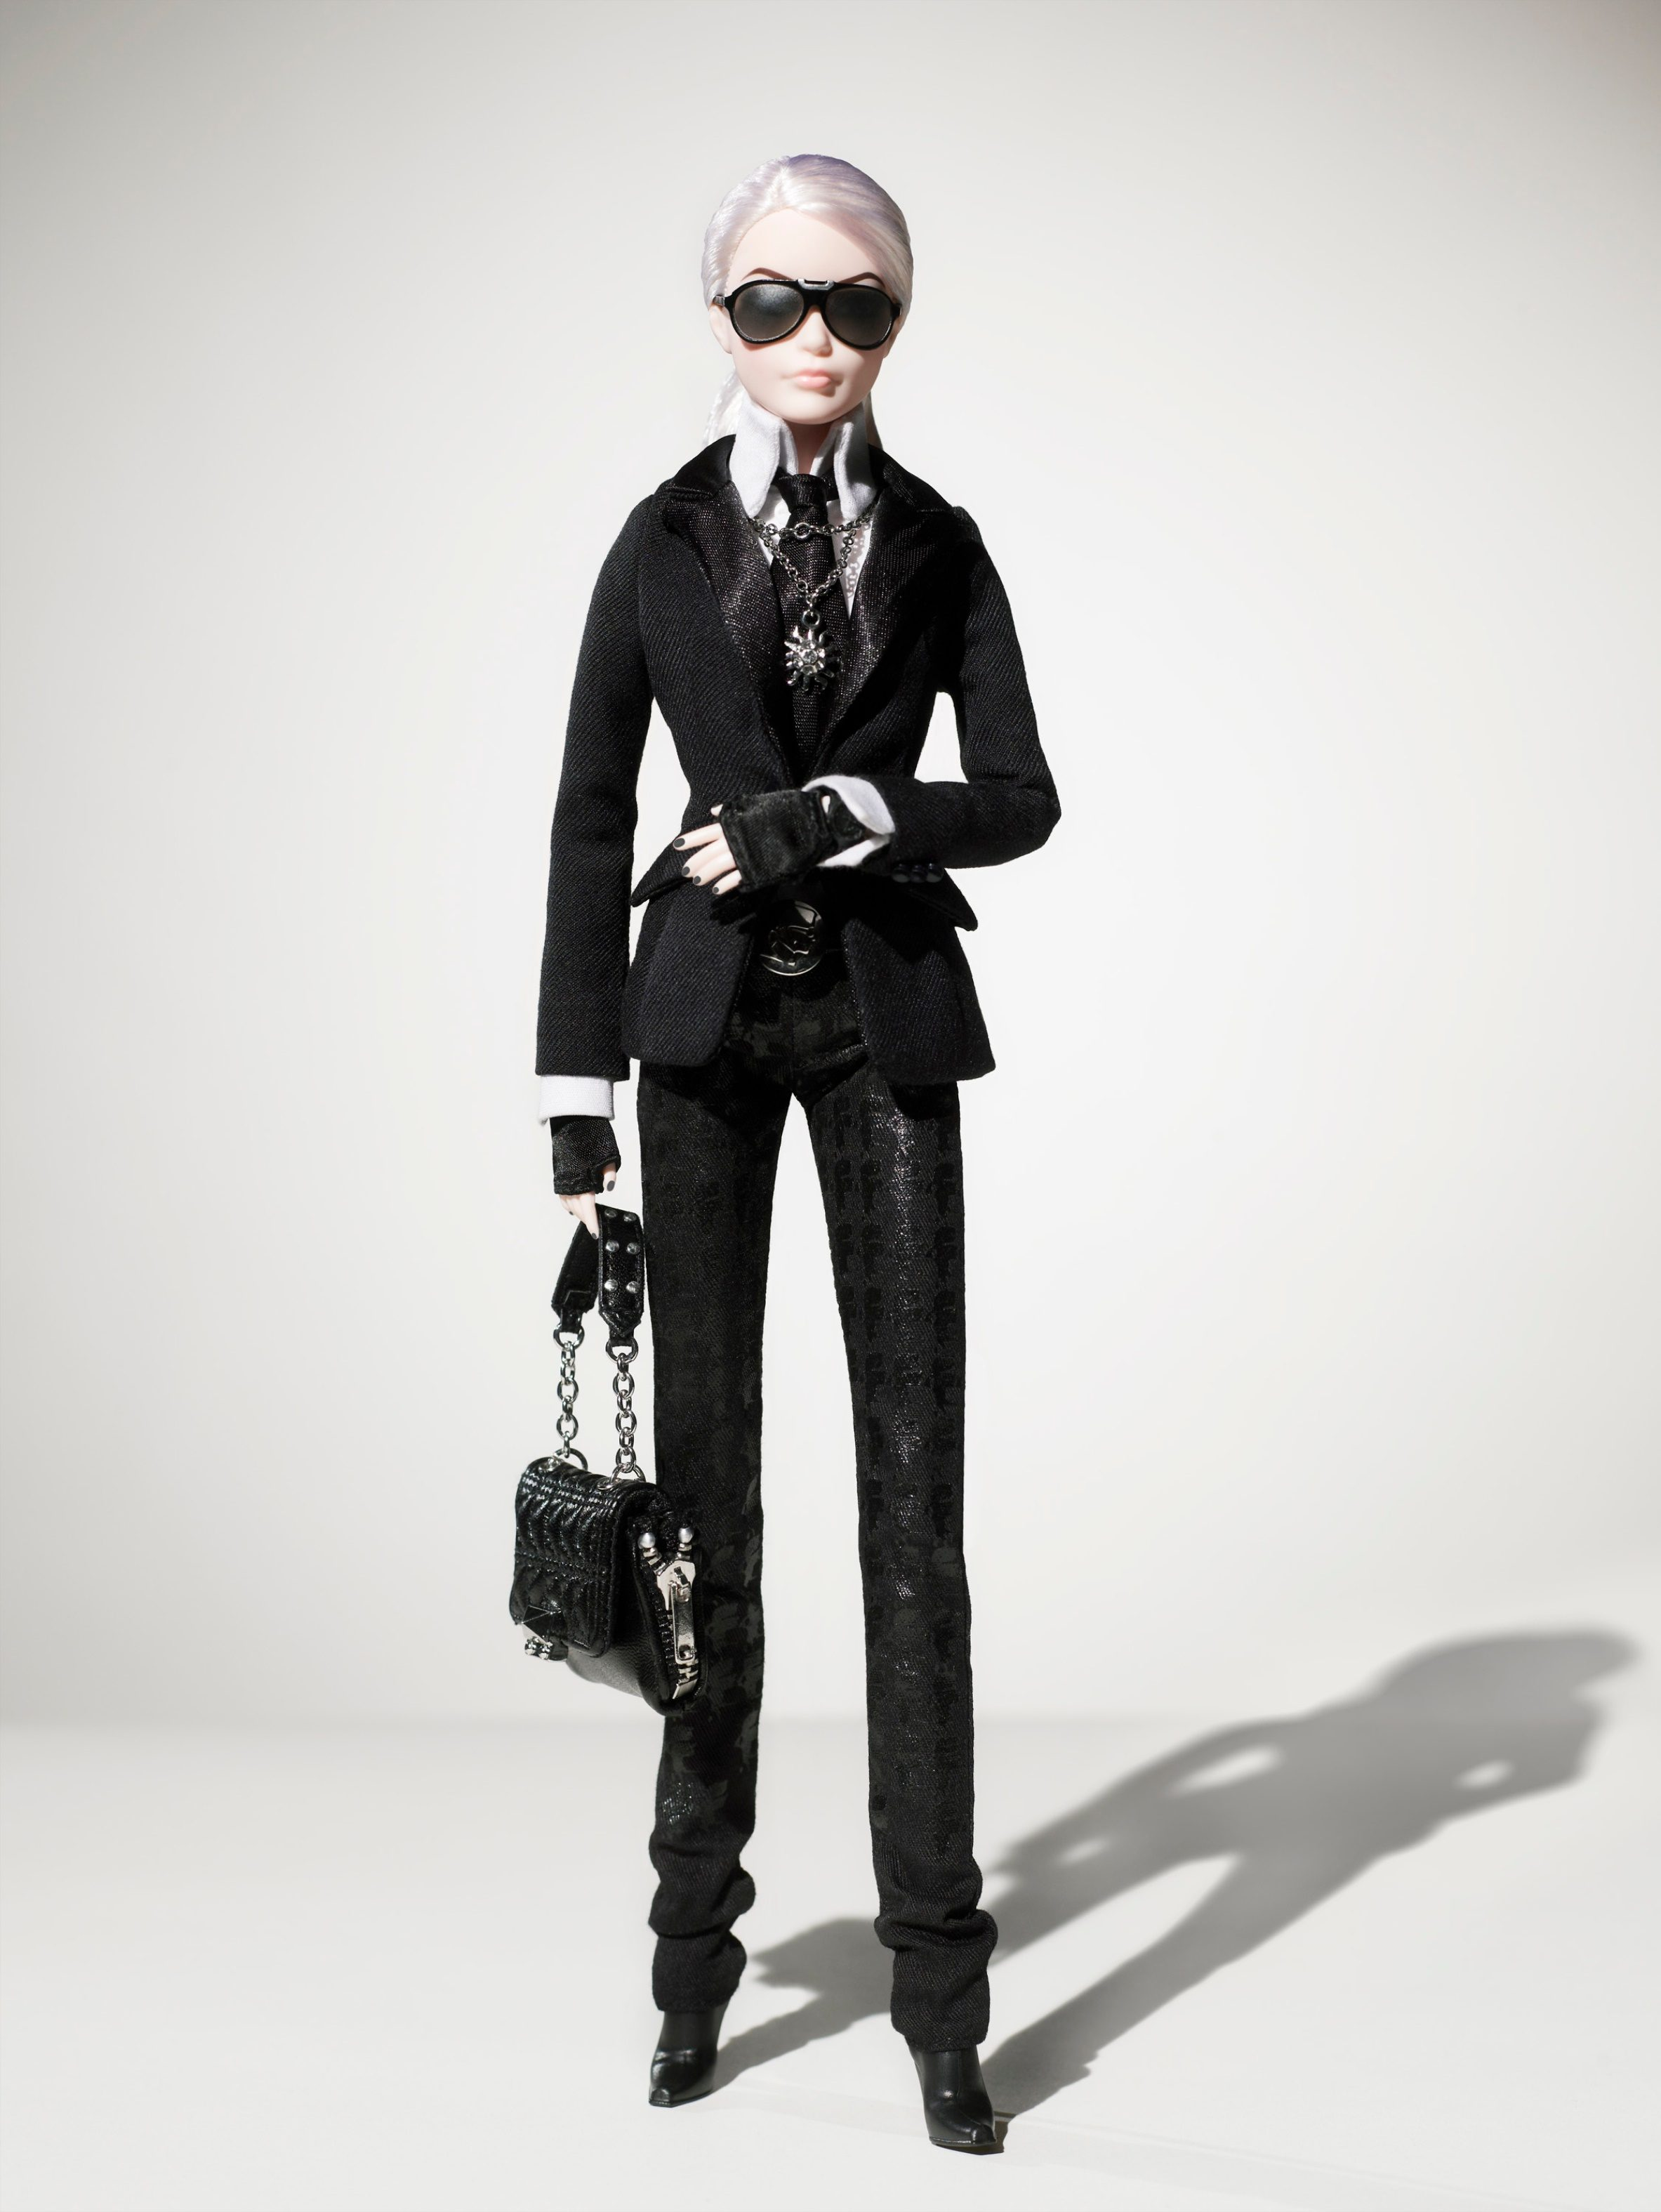 karl lagerfeld barbie doll